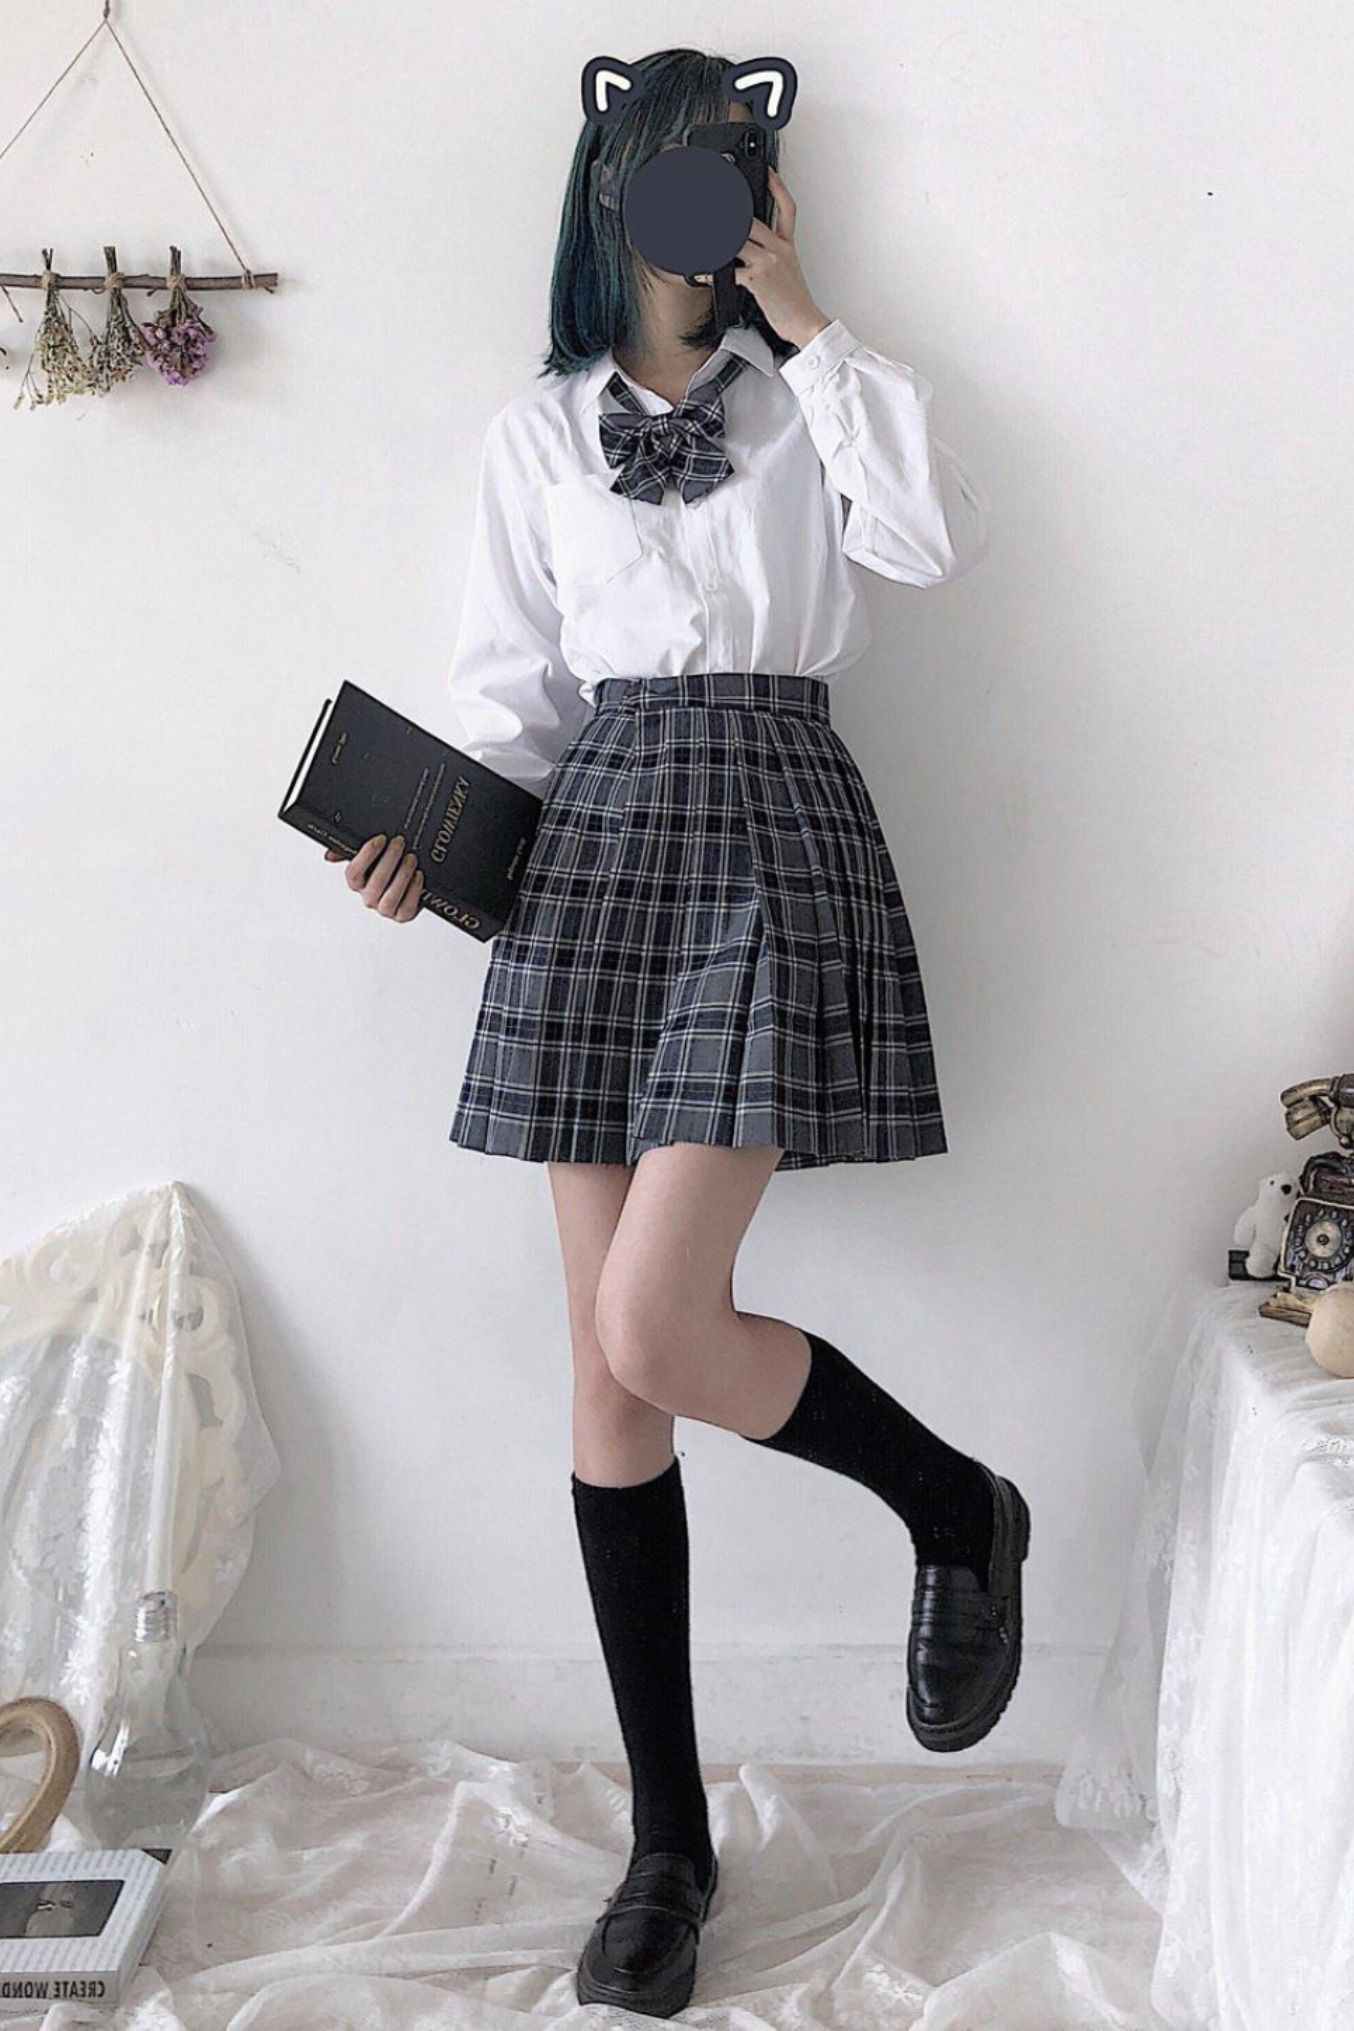 Japanese Preppy Style School Mini Skirt In 2020 Bad Girl Outfits Preppy Style Aesthetic Clothing Stores